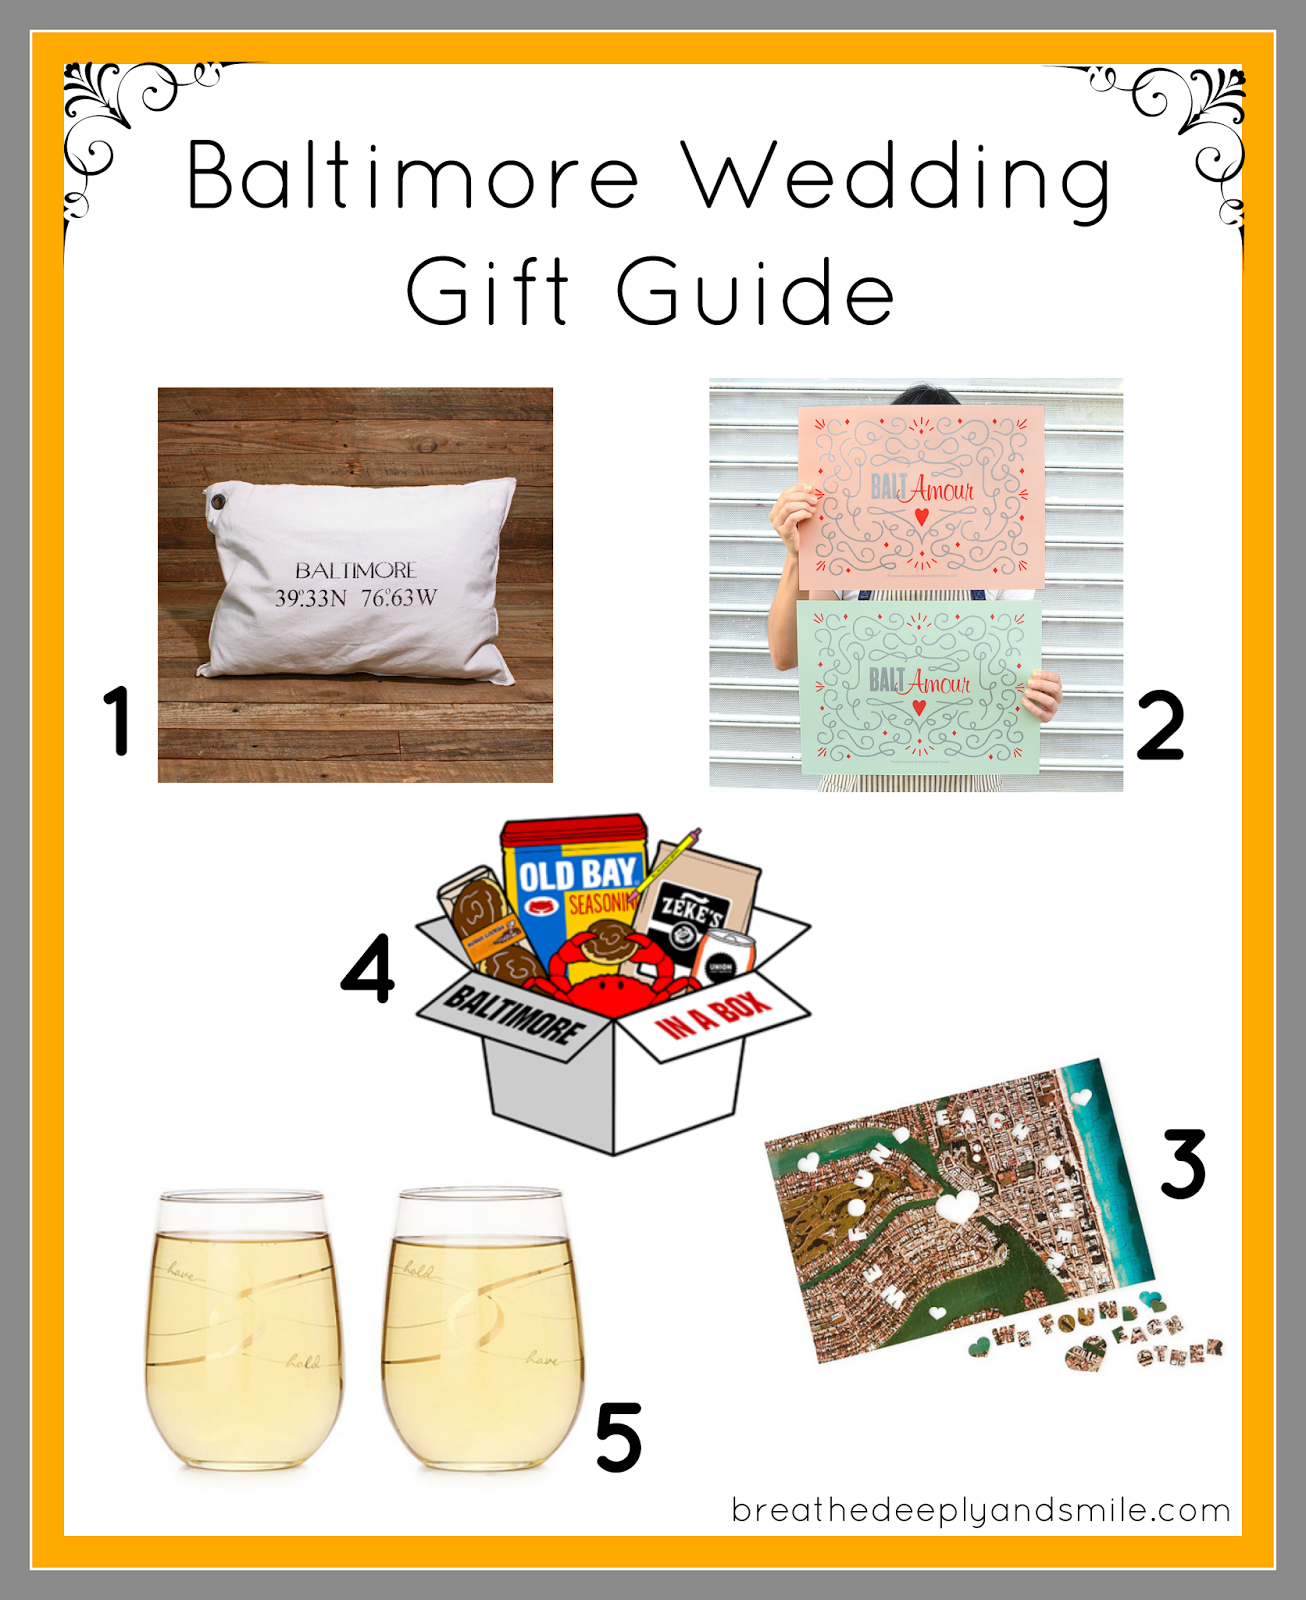 Baltimore Wedding Gift Guide {featuring Uncommon Goods}